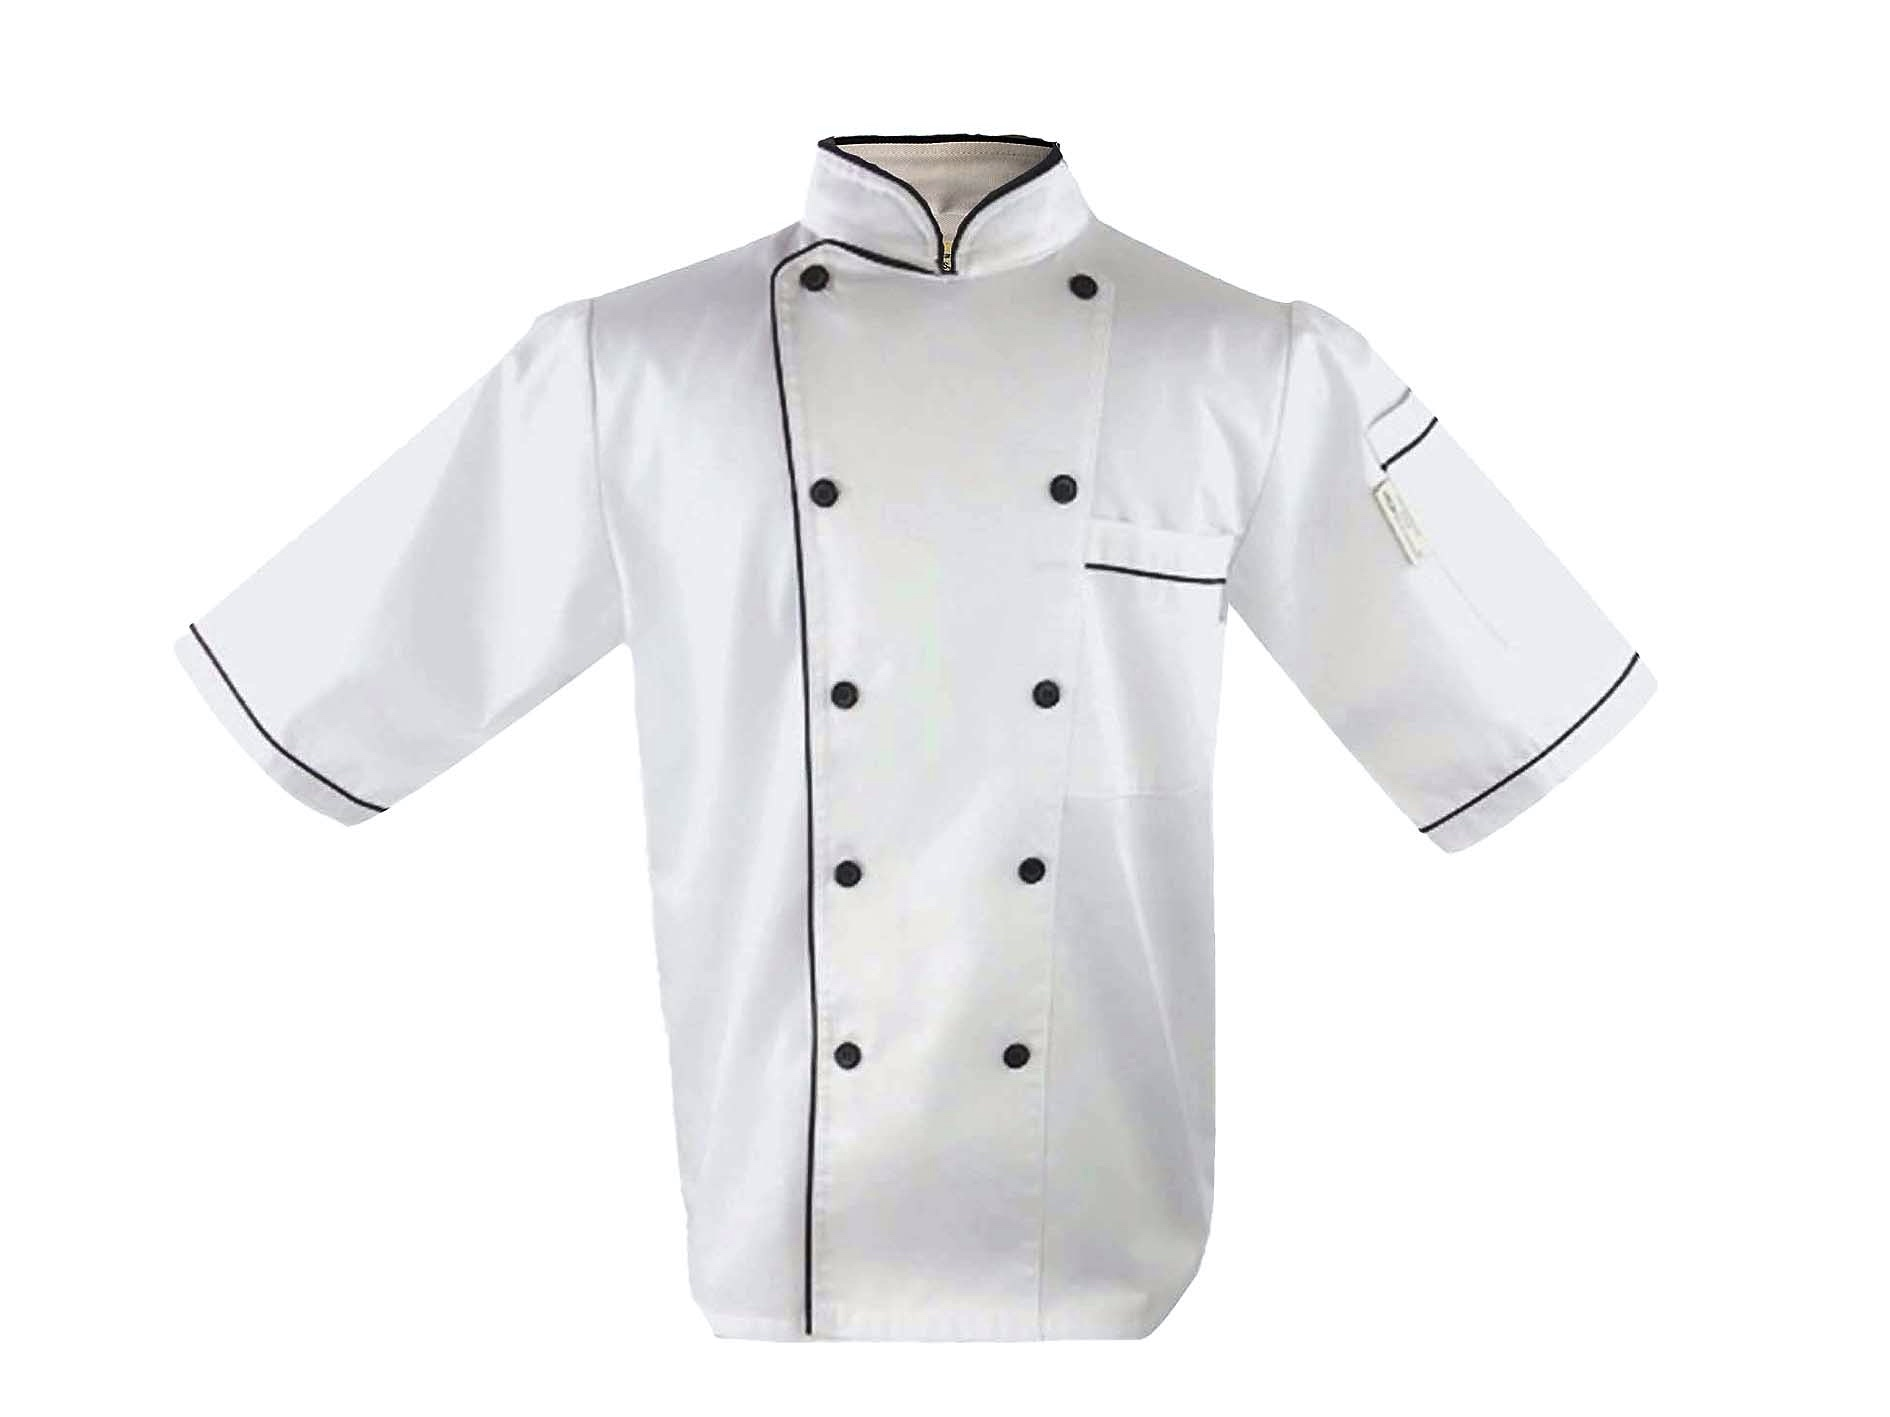 Uniform Chef Coat Unisex Short Sleeve Catering Jackets style  or chef tie (019)